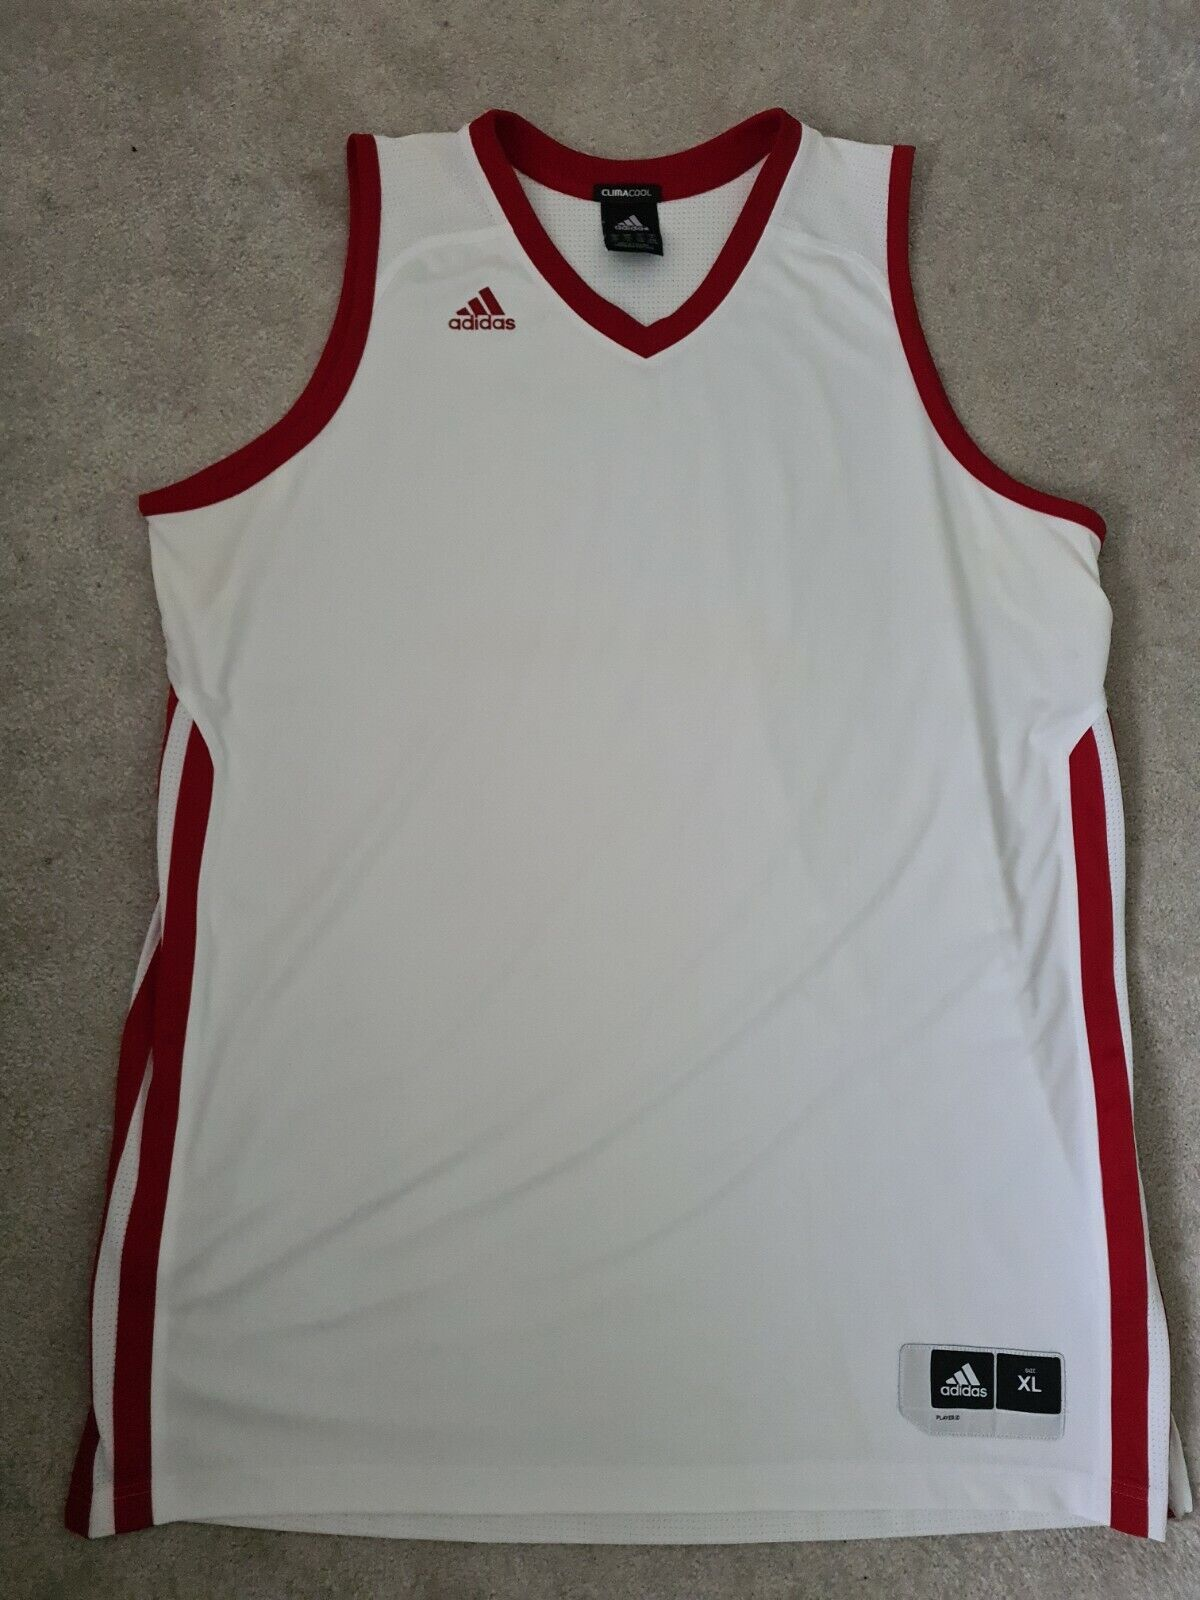 Mens White And Red Adidas Climacool Size Xl Tank Top Sleeveless Gym Active